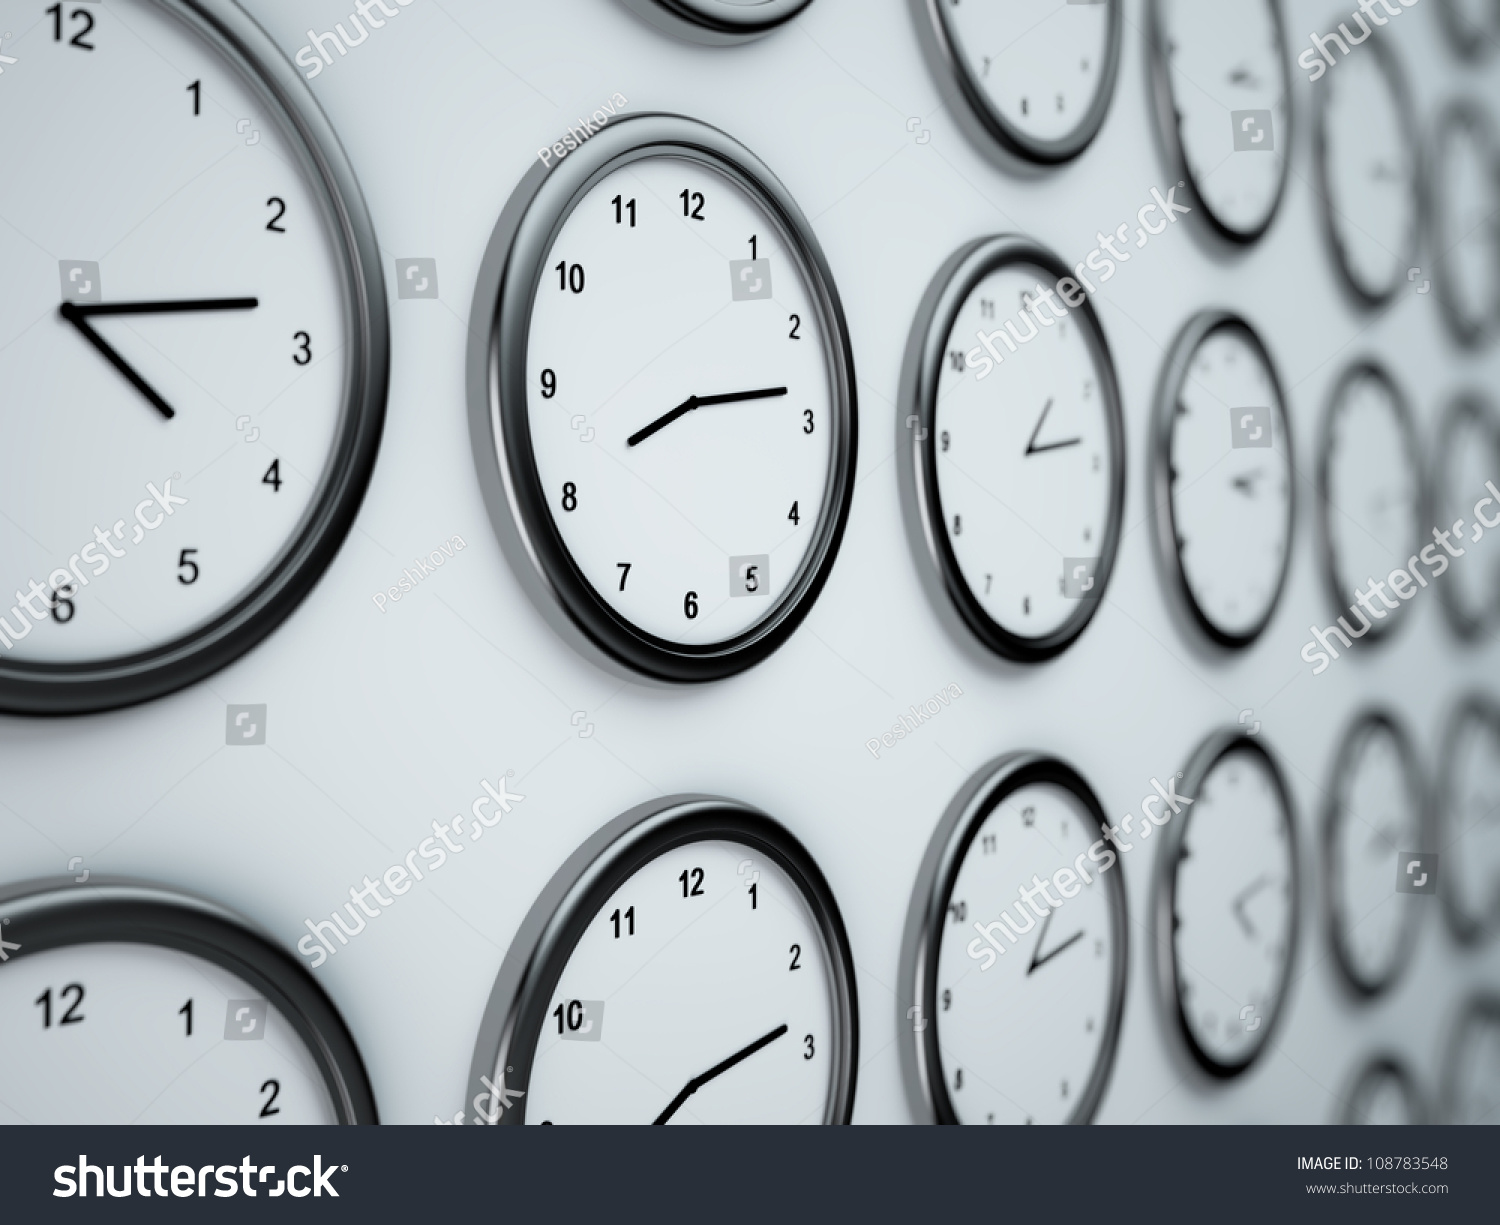 High resolution world time wall stock illustration 108783548 high resolution world time wall amipublicfo Choice Image